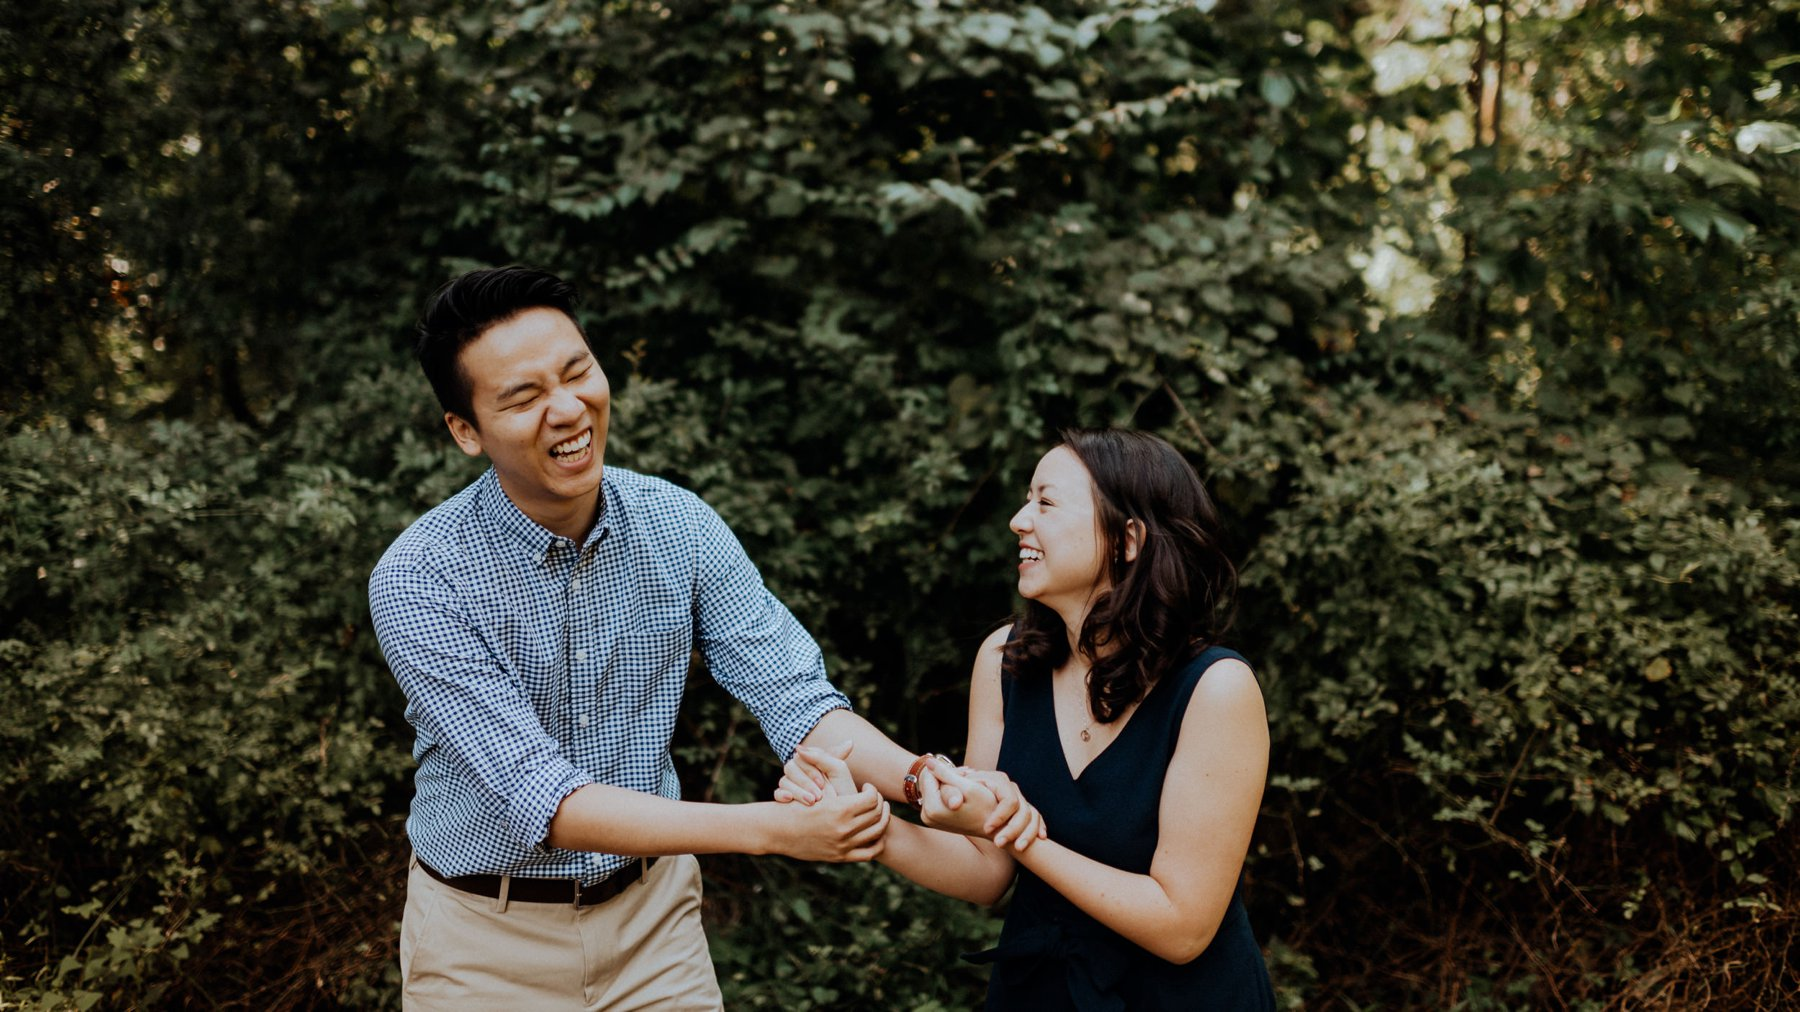 341-349-ridley-creek-state-park-engagement-session-6.jpg